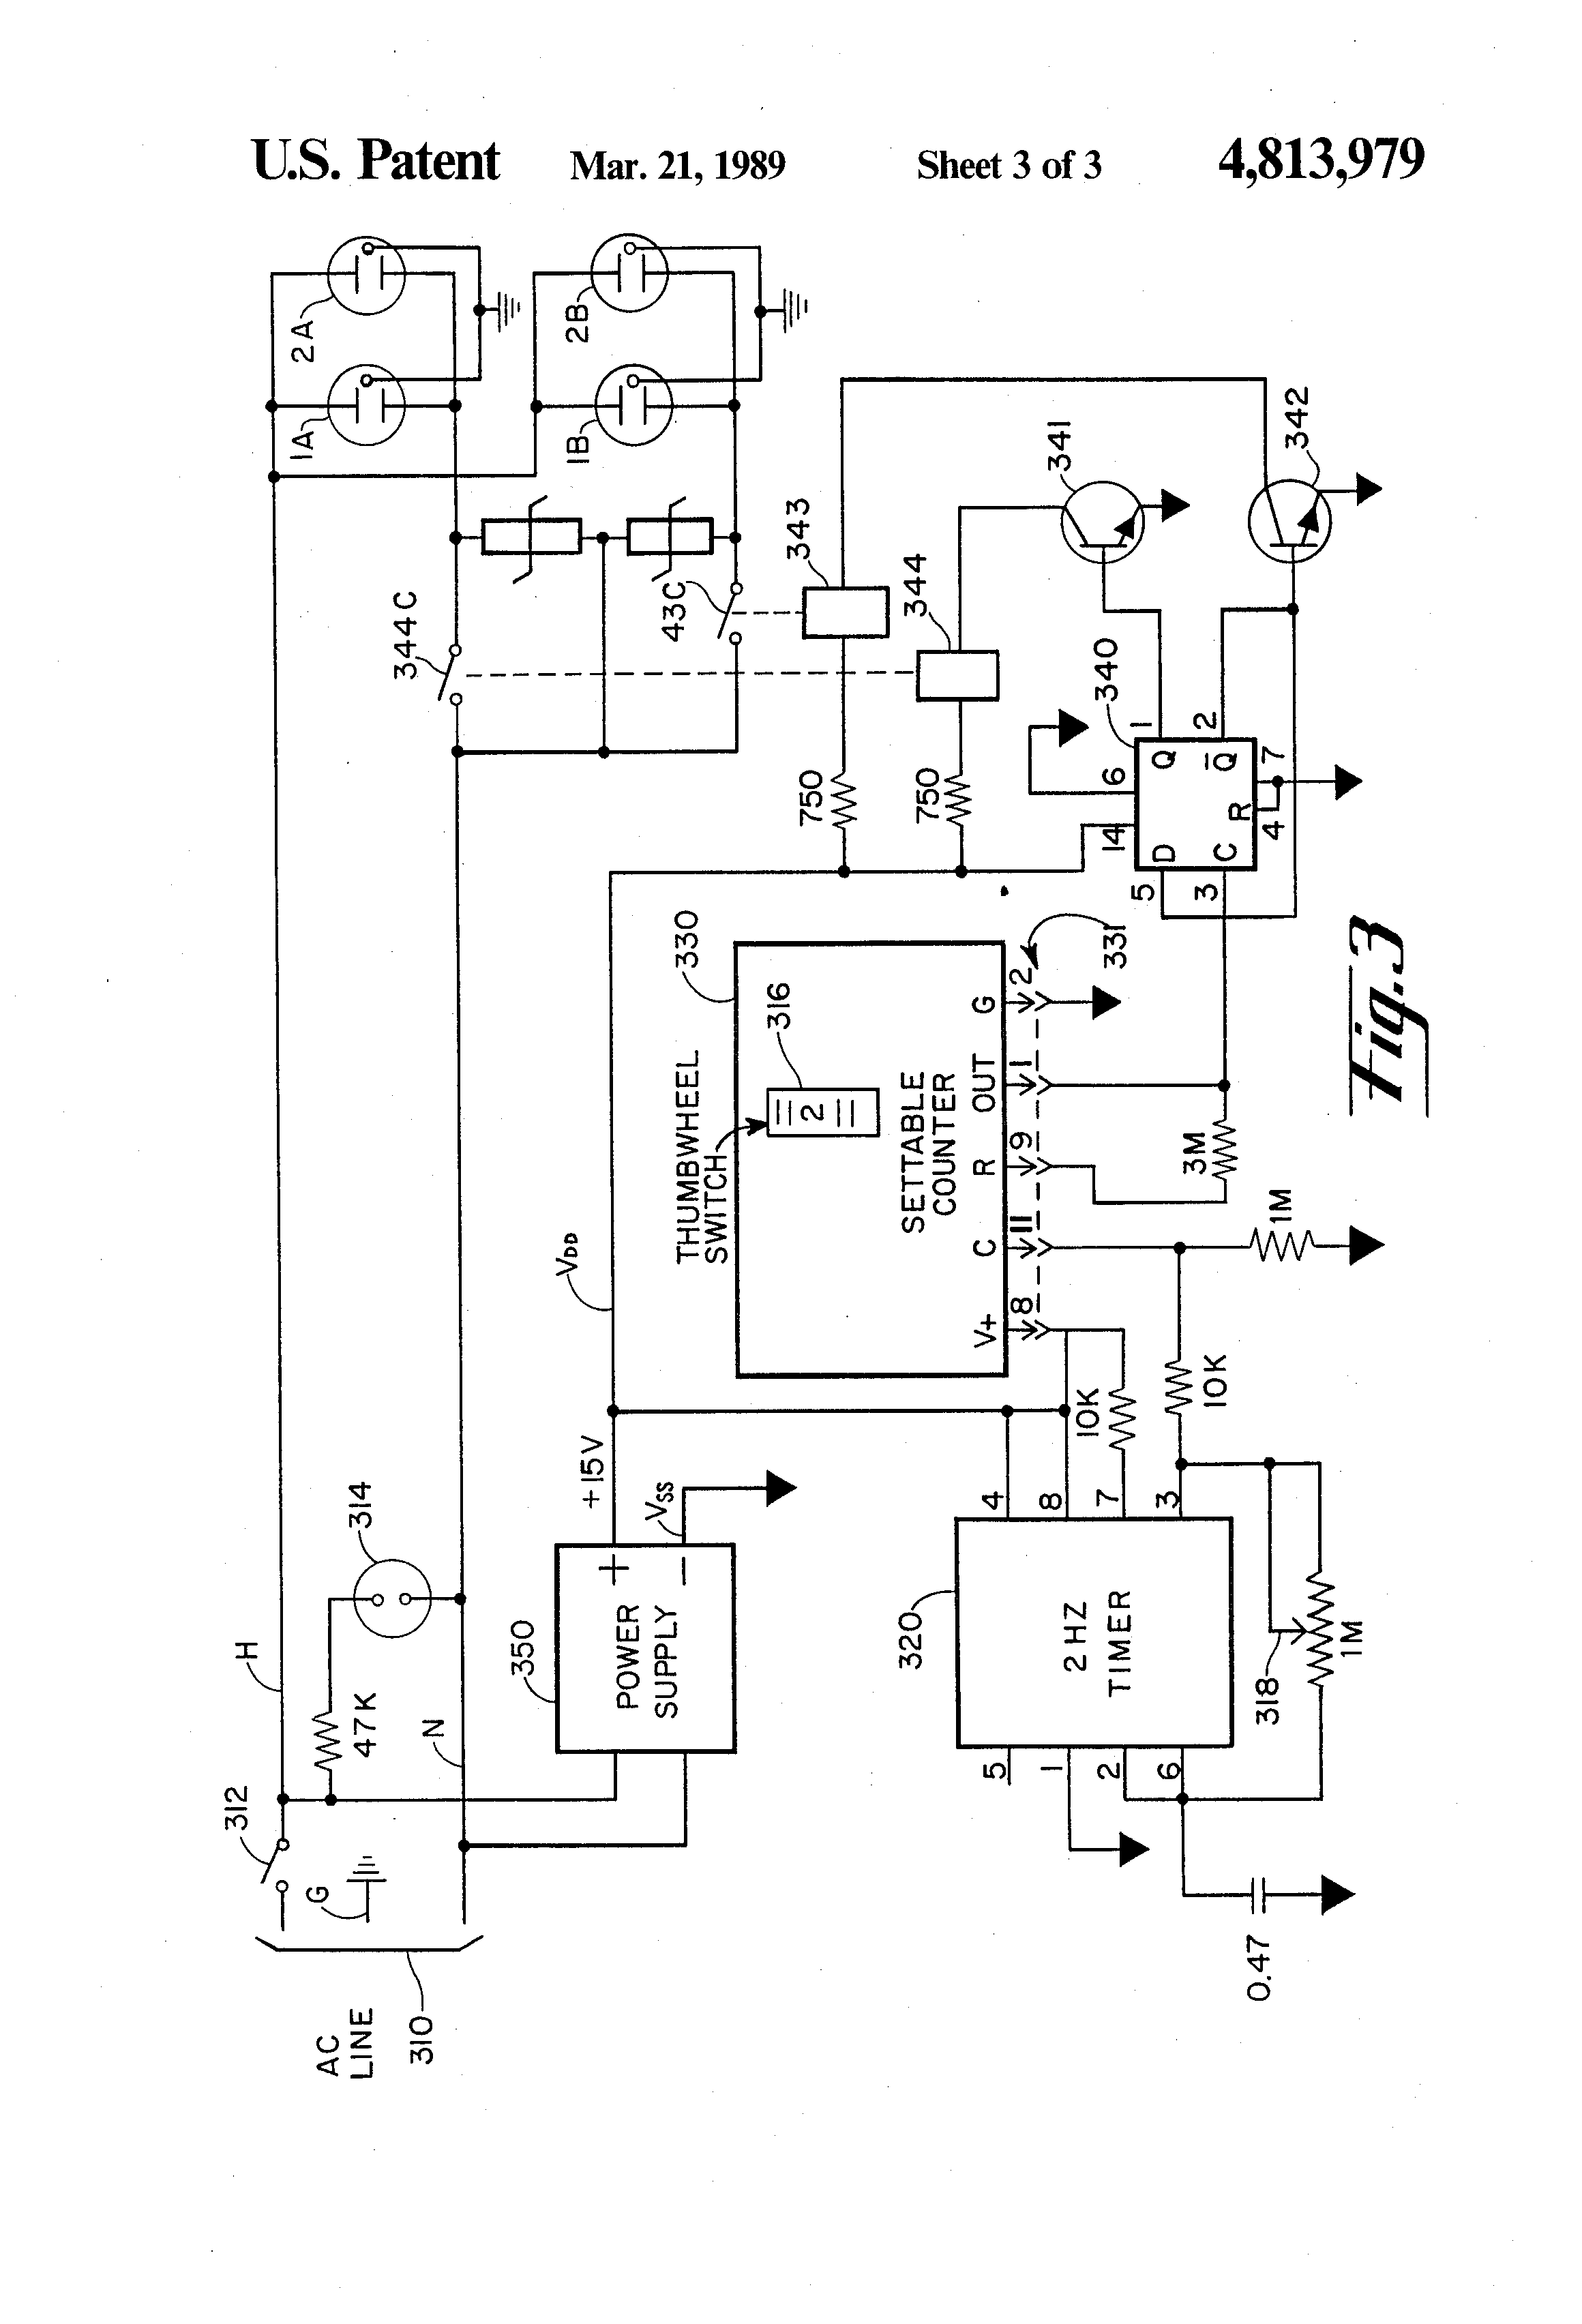 Numatics Valve Wiring Diagram : 29 Wiring Diagram Images